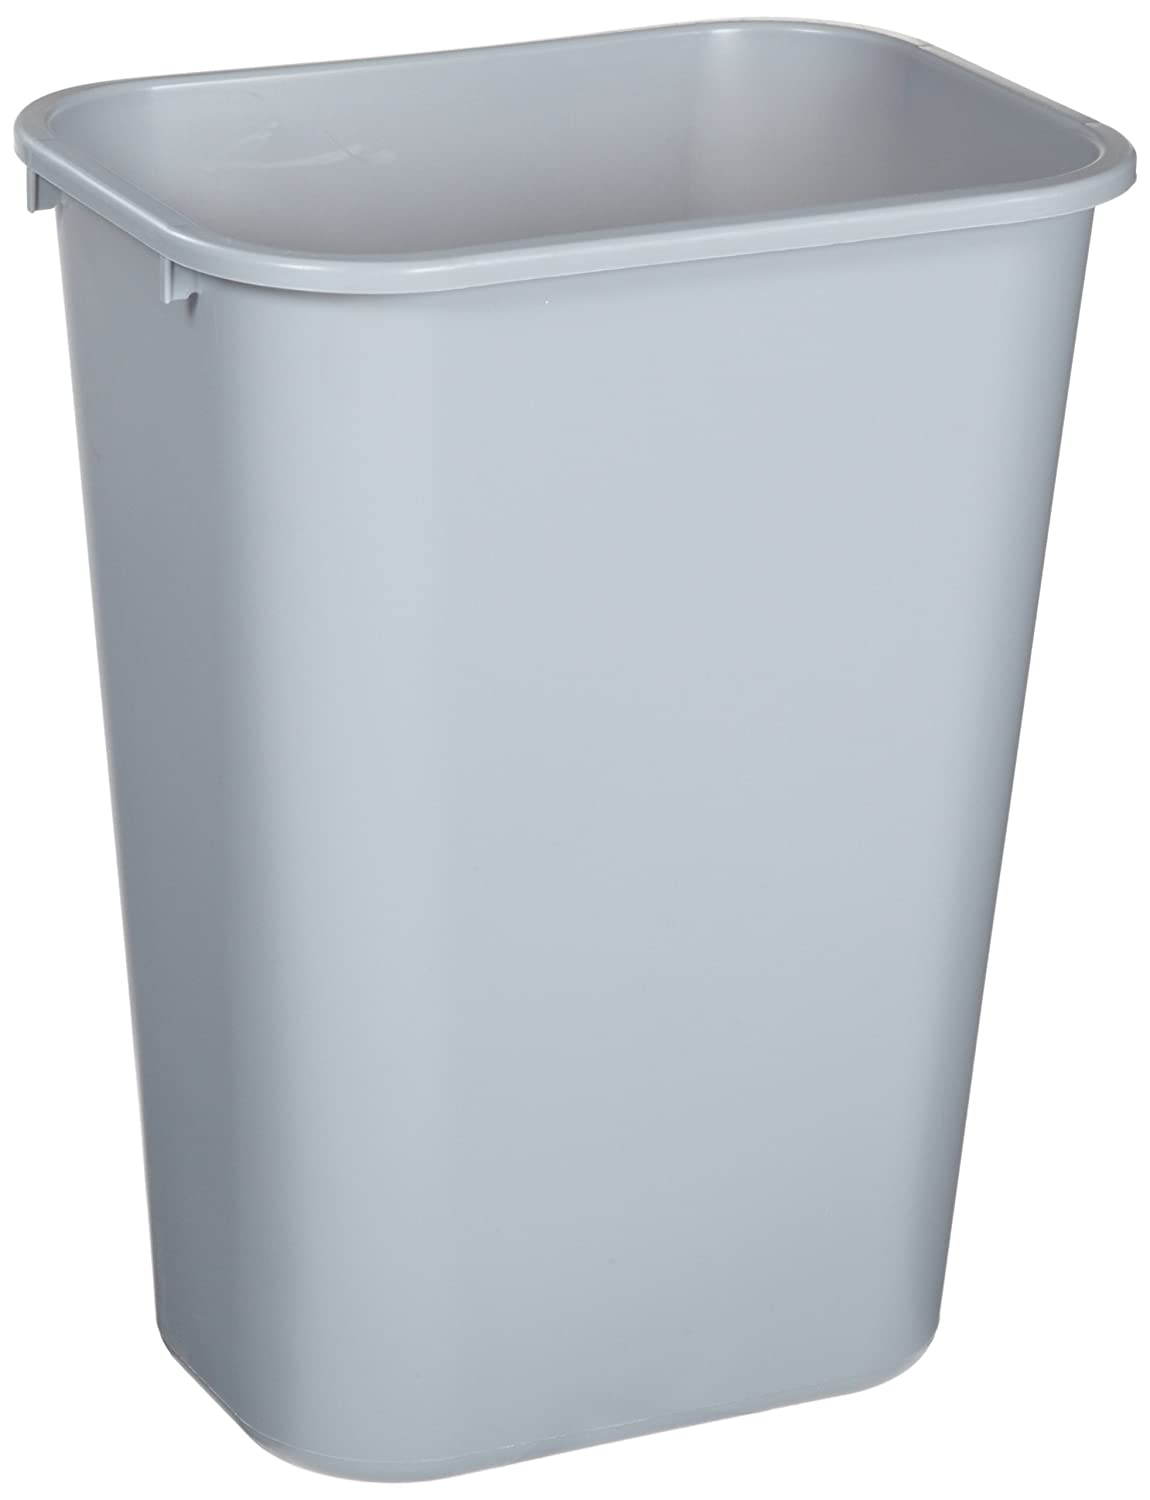 Rubbermaid bathroom wastebasket plastic trash can bin for Bathroom garbage can